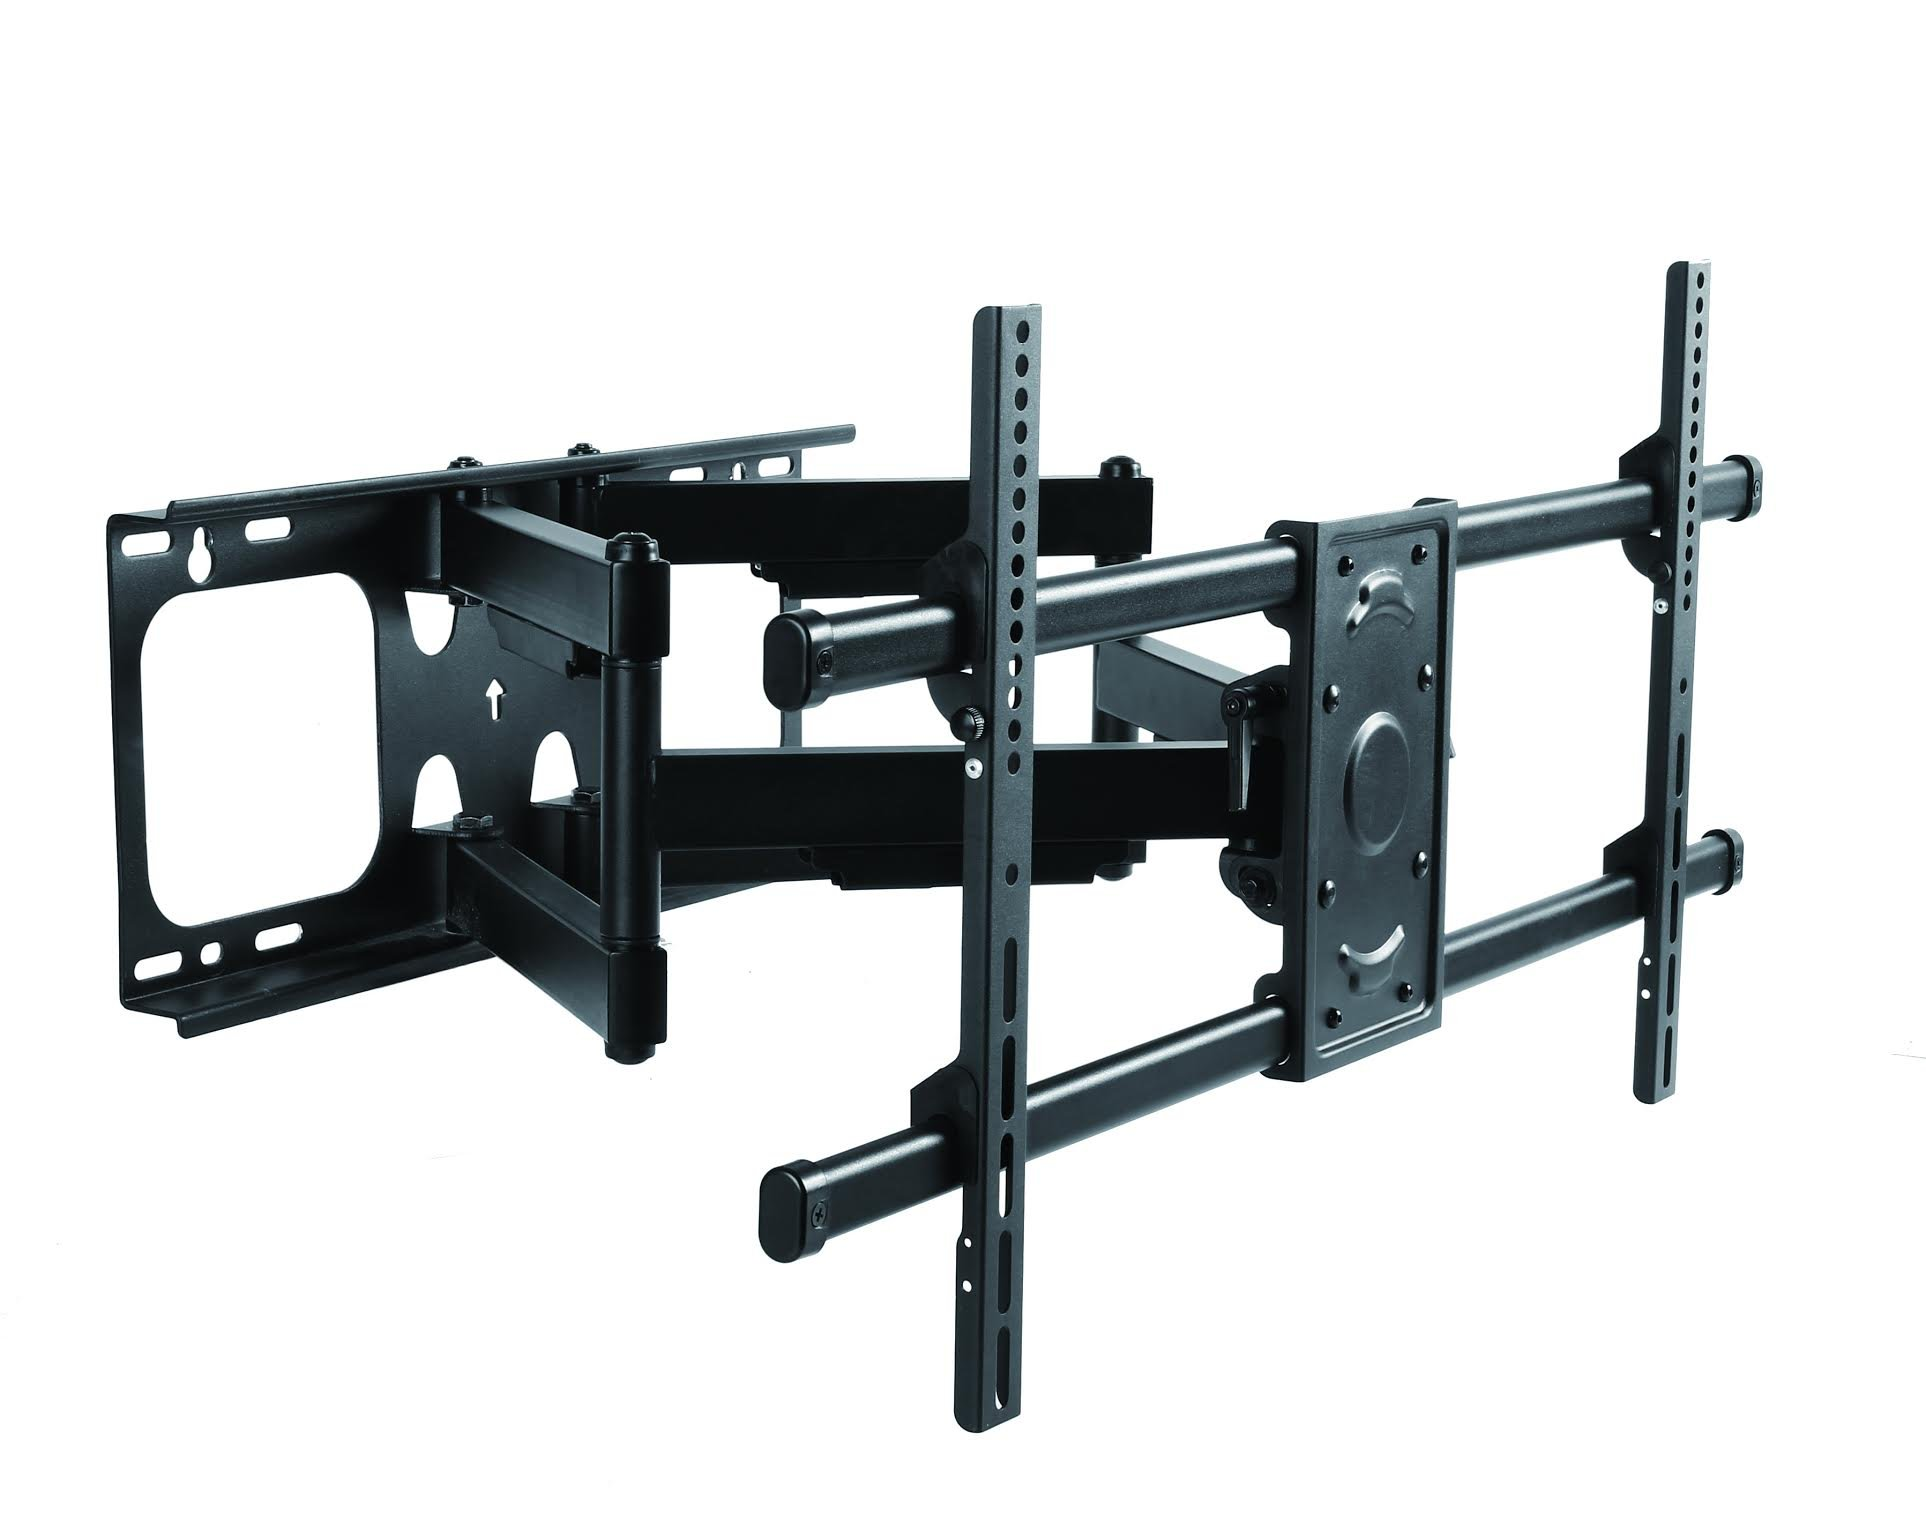 ELITE MOUNT - Heavy Duty Dual Arm Articulating TV Wall Mount Bracket for Sony XBR75X940D 75-Inch 4K HDR Ultra HD TV, Reduced Glare - Buy Smart!